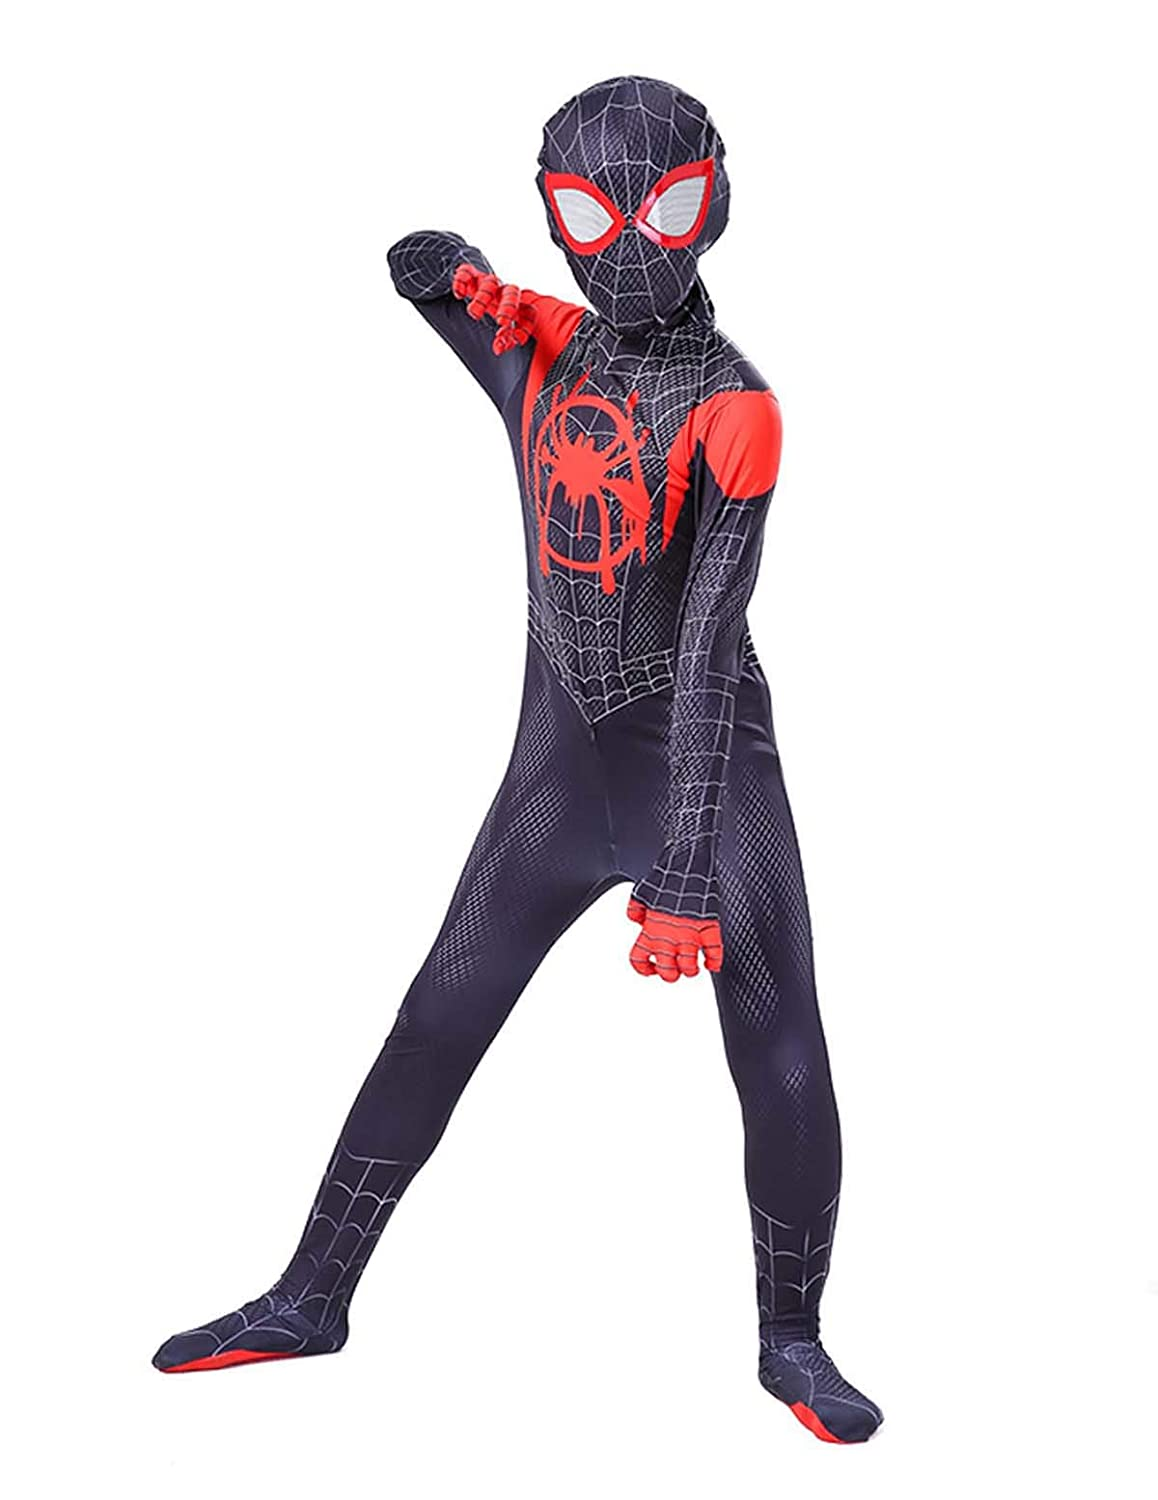 Tights for Children Boys or Adult One-piece Superhero Spiderman Costumes